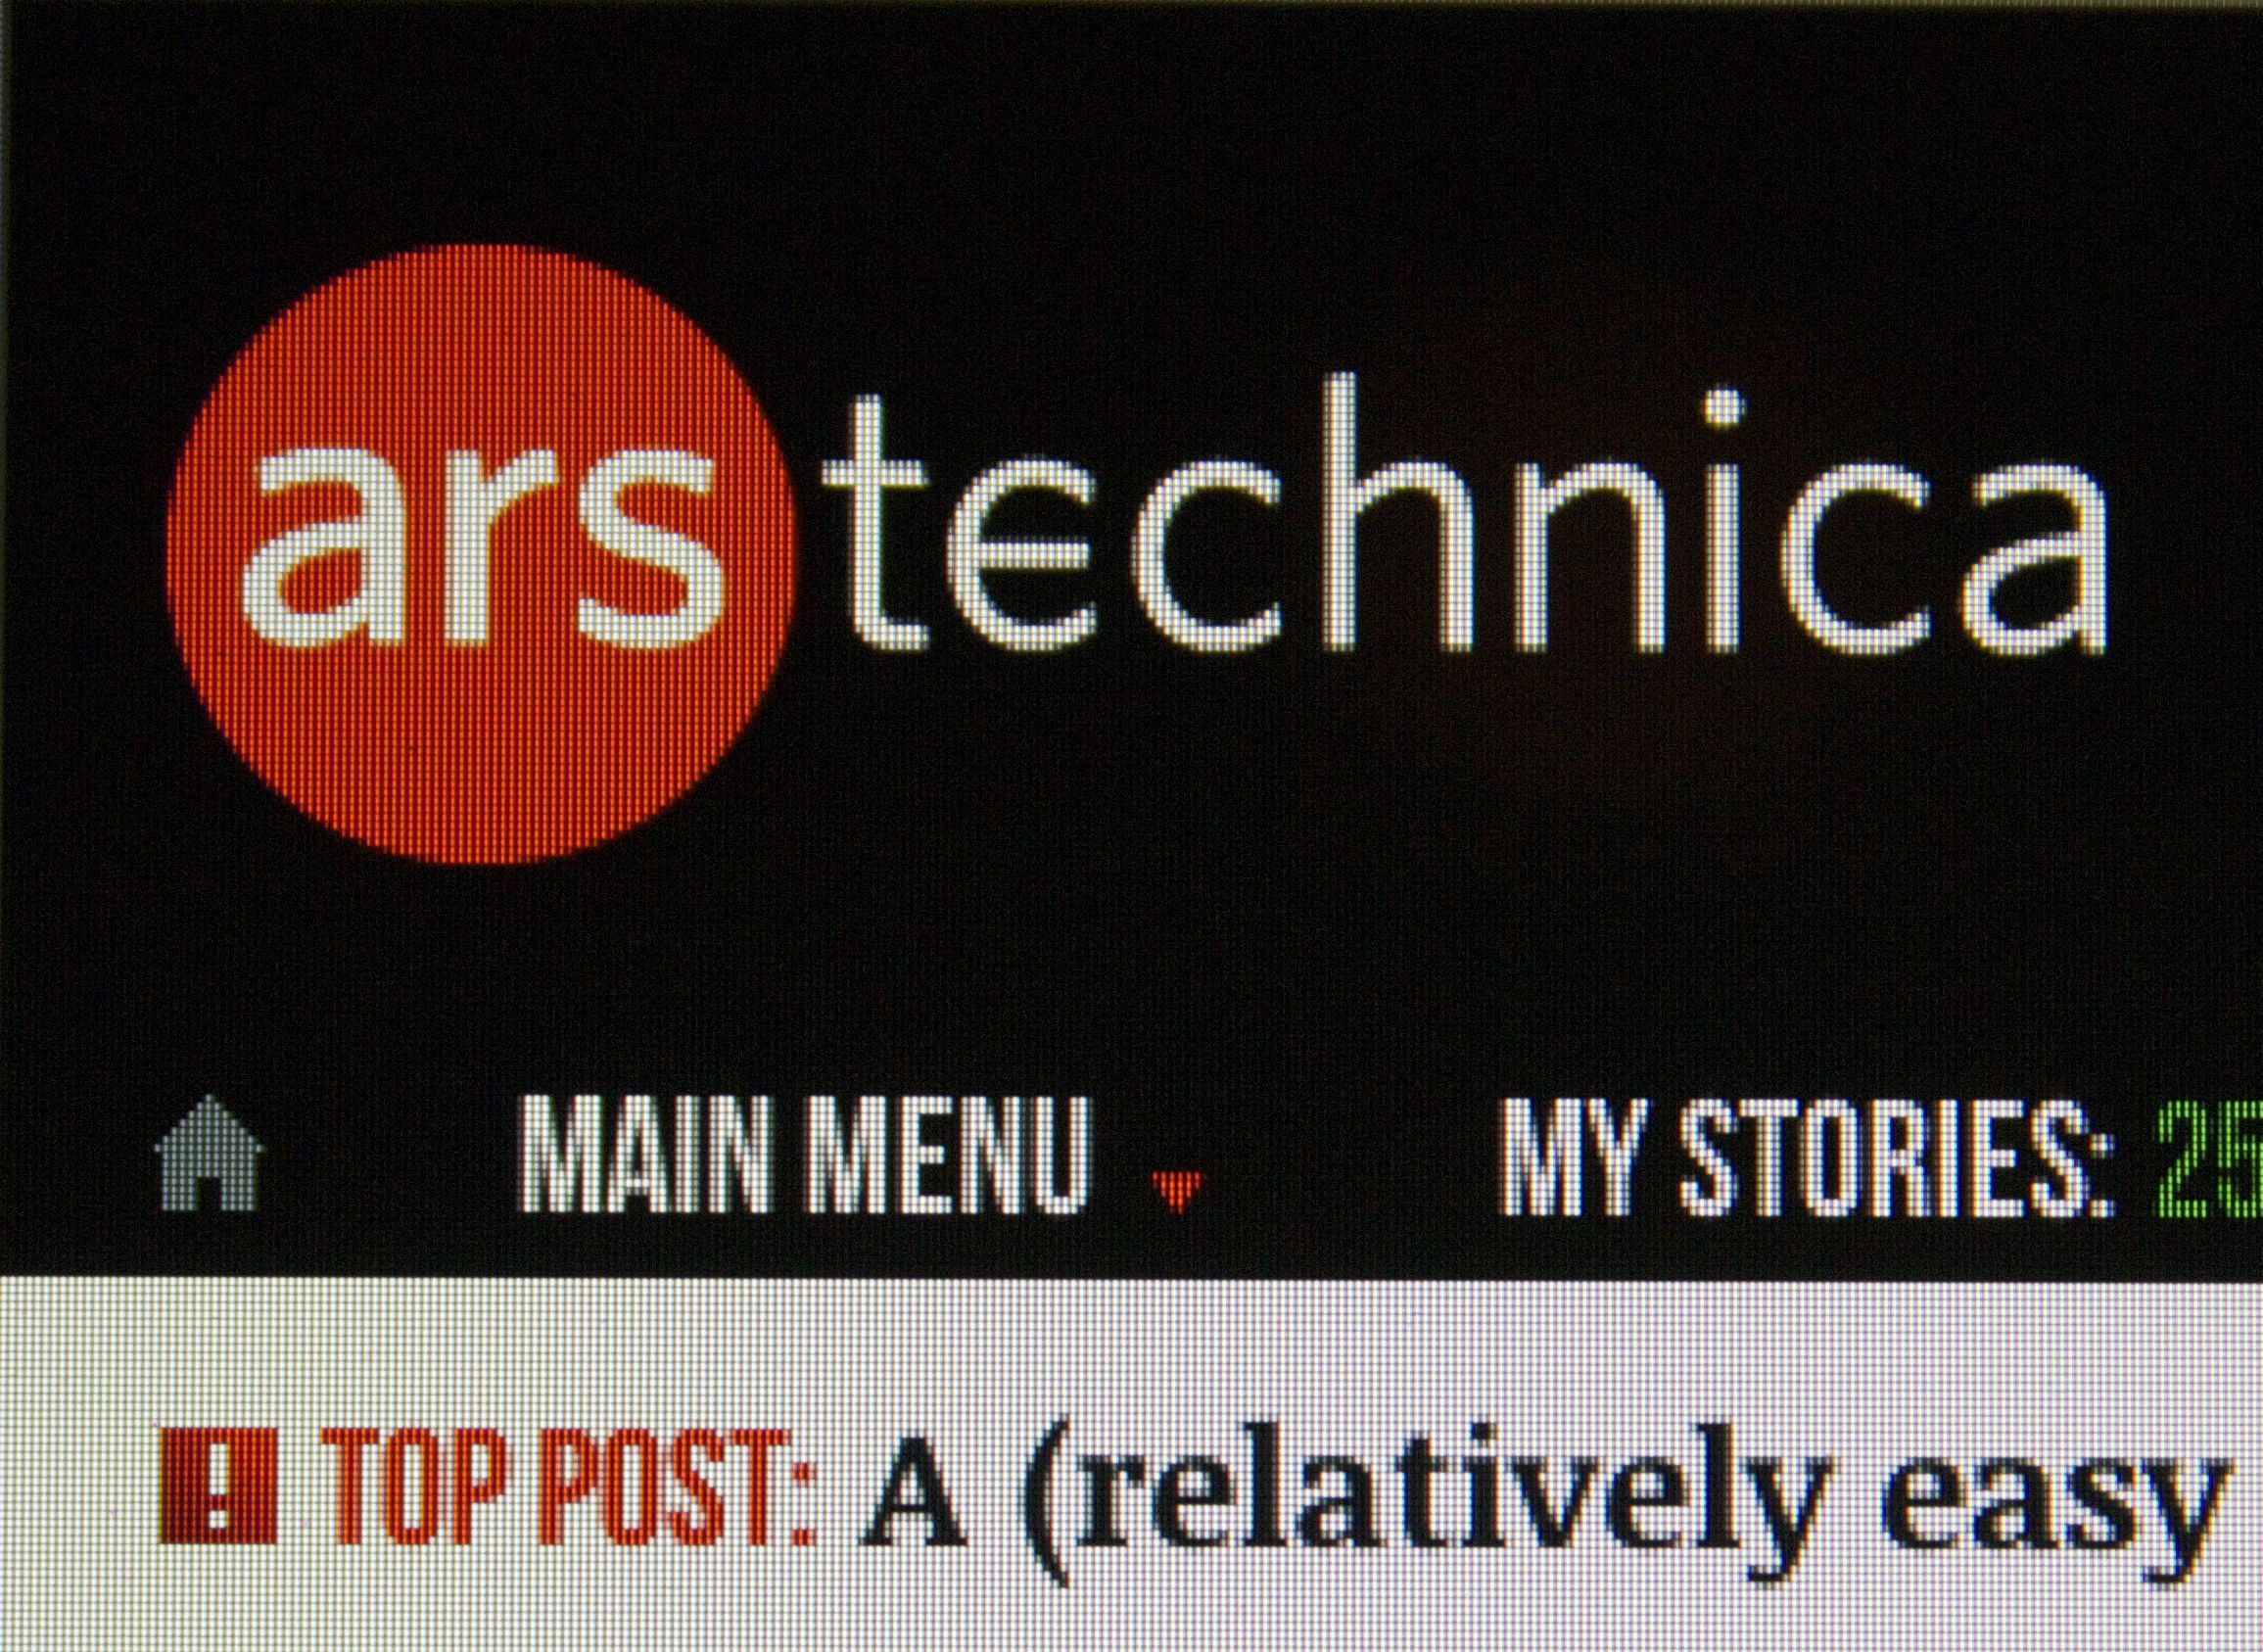 A chunk of the Ars homepage on the 2013 13-inch MacBook Air's screen. Note the clearly visible pixels.